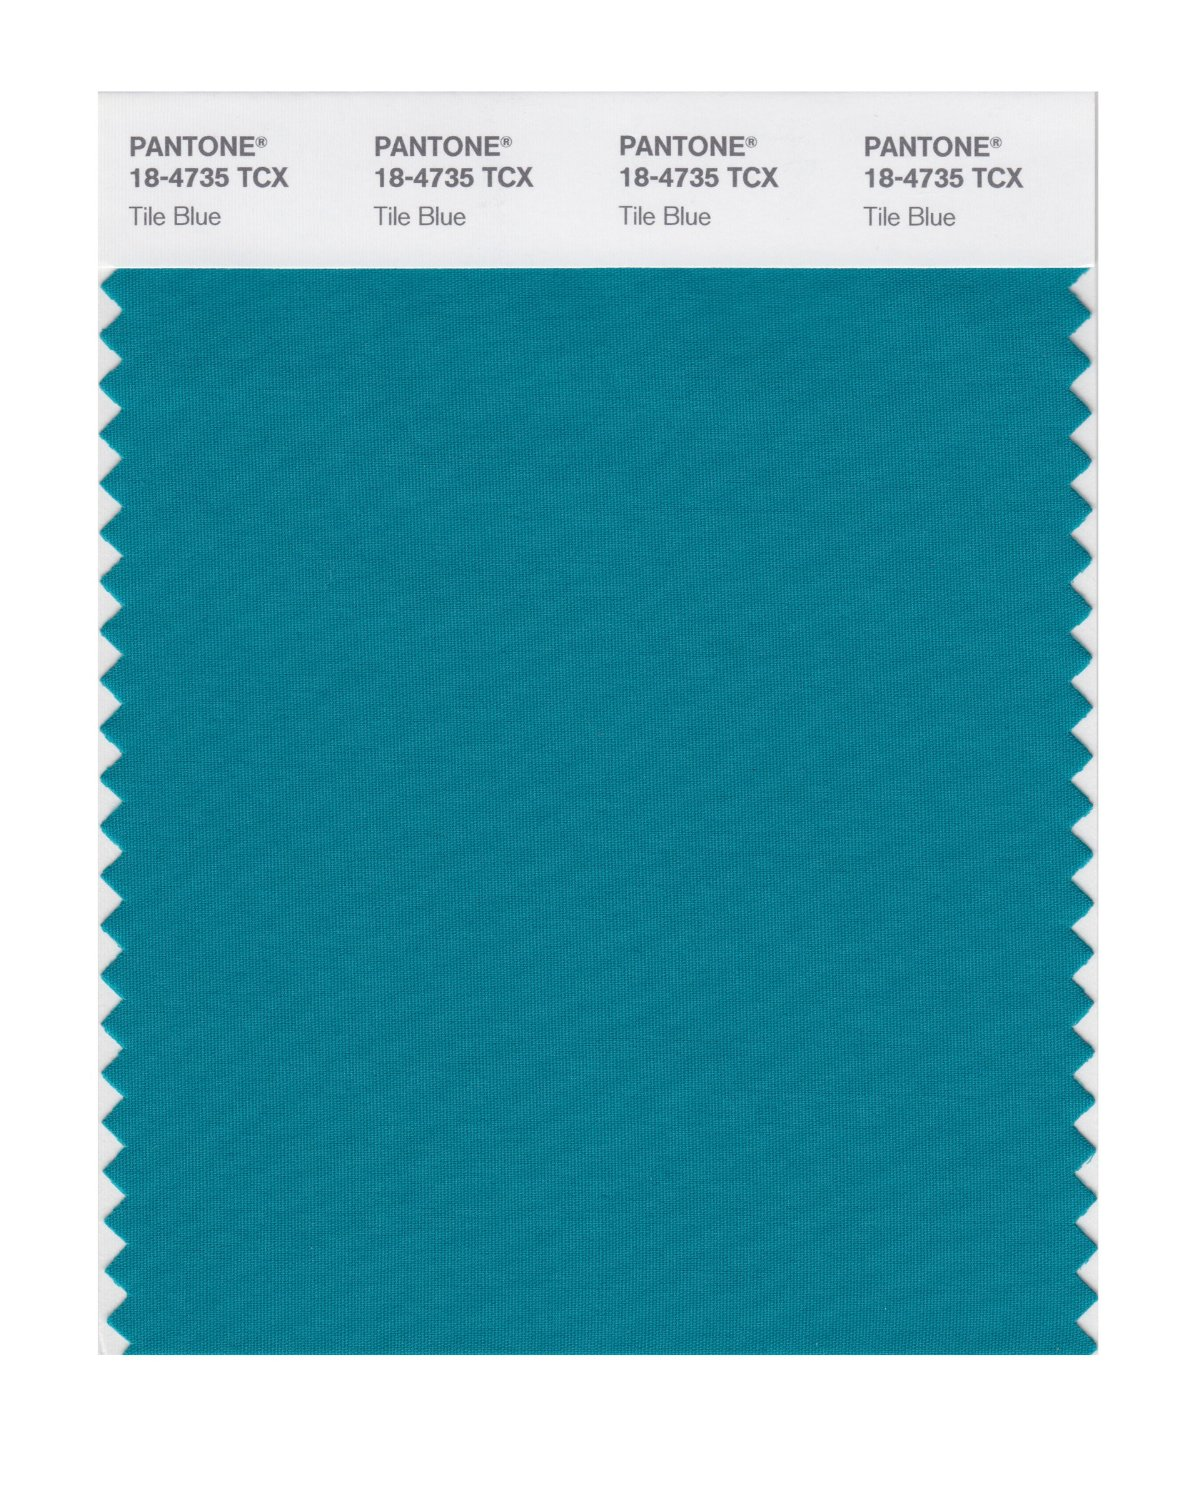 Pantone Smart Swatch 18-4735 Tile Blue